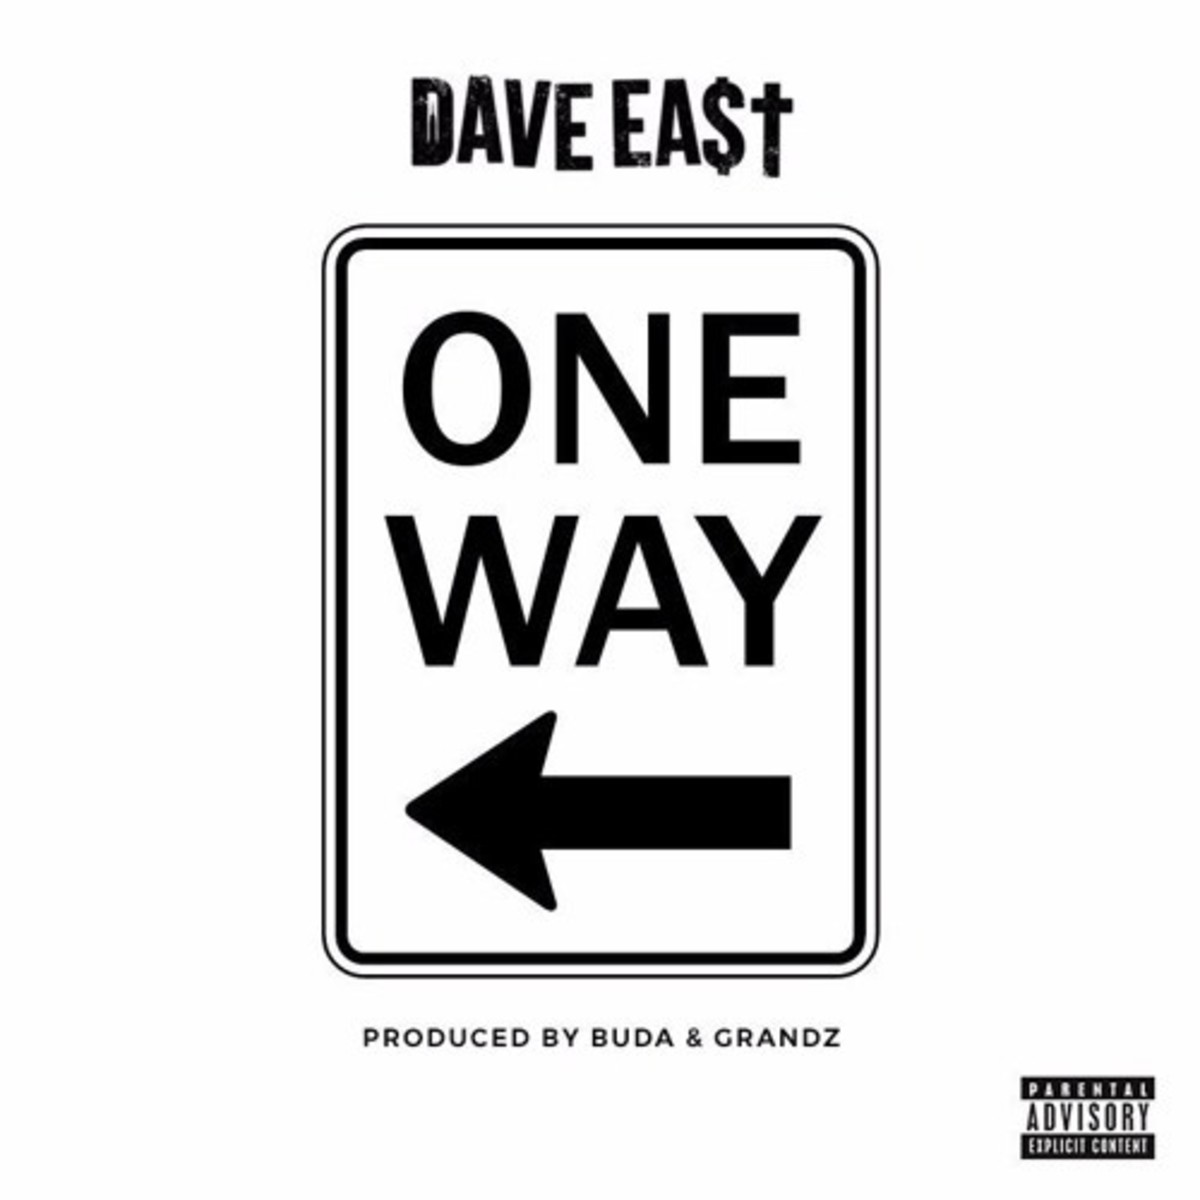 dave-east-one-way.jpg